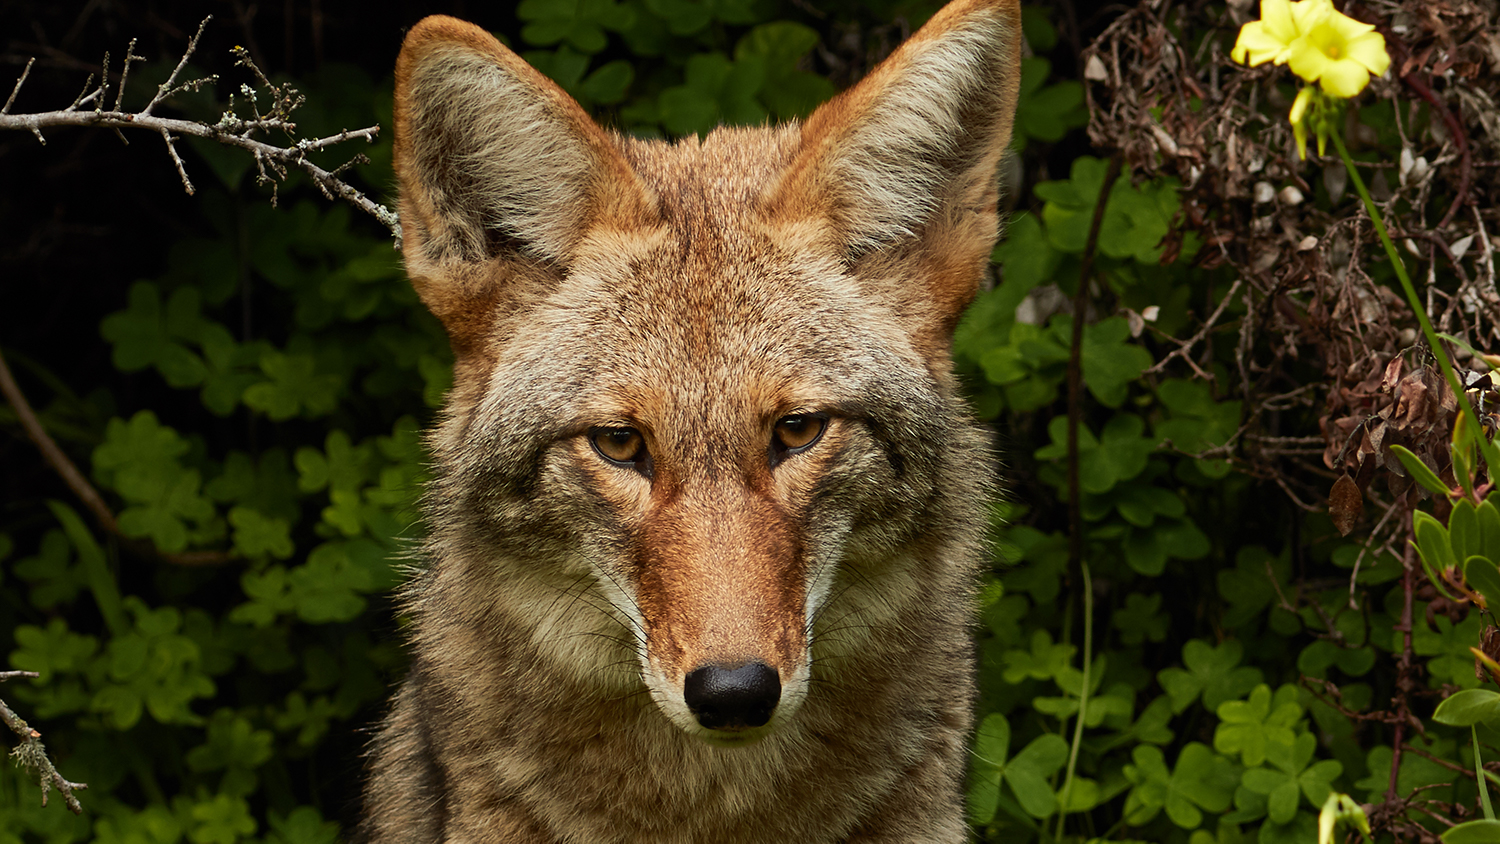 Coyote sitting in front of forest. Coyotes Are Poised To Enter South America For The First Time